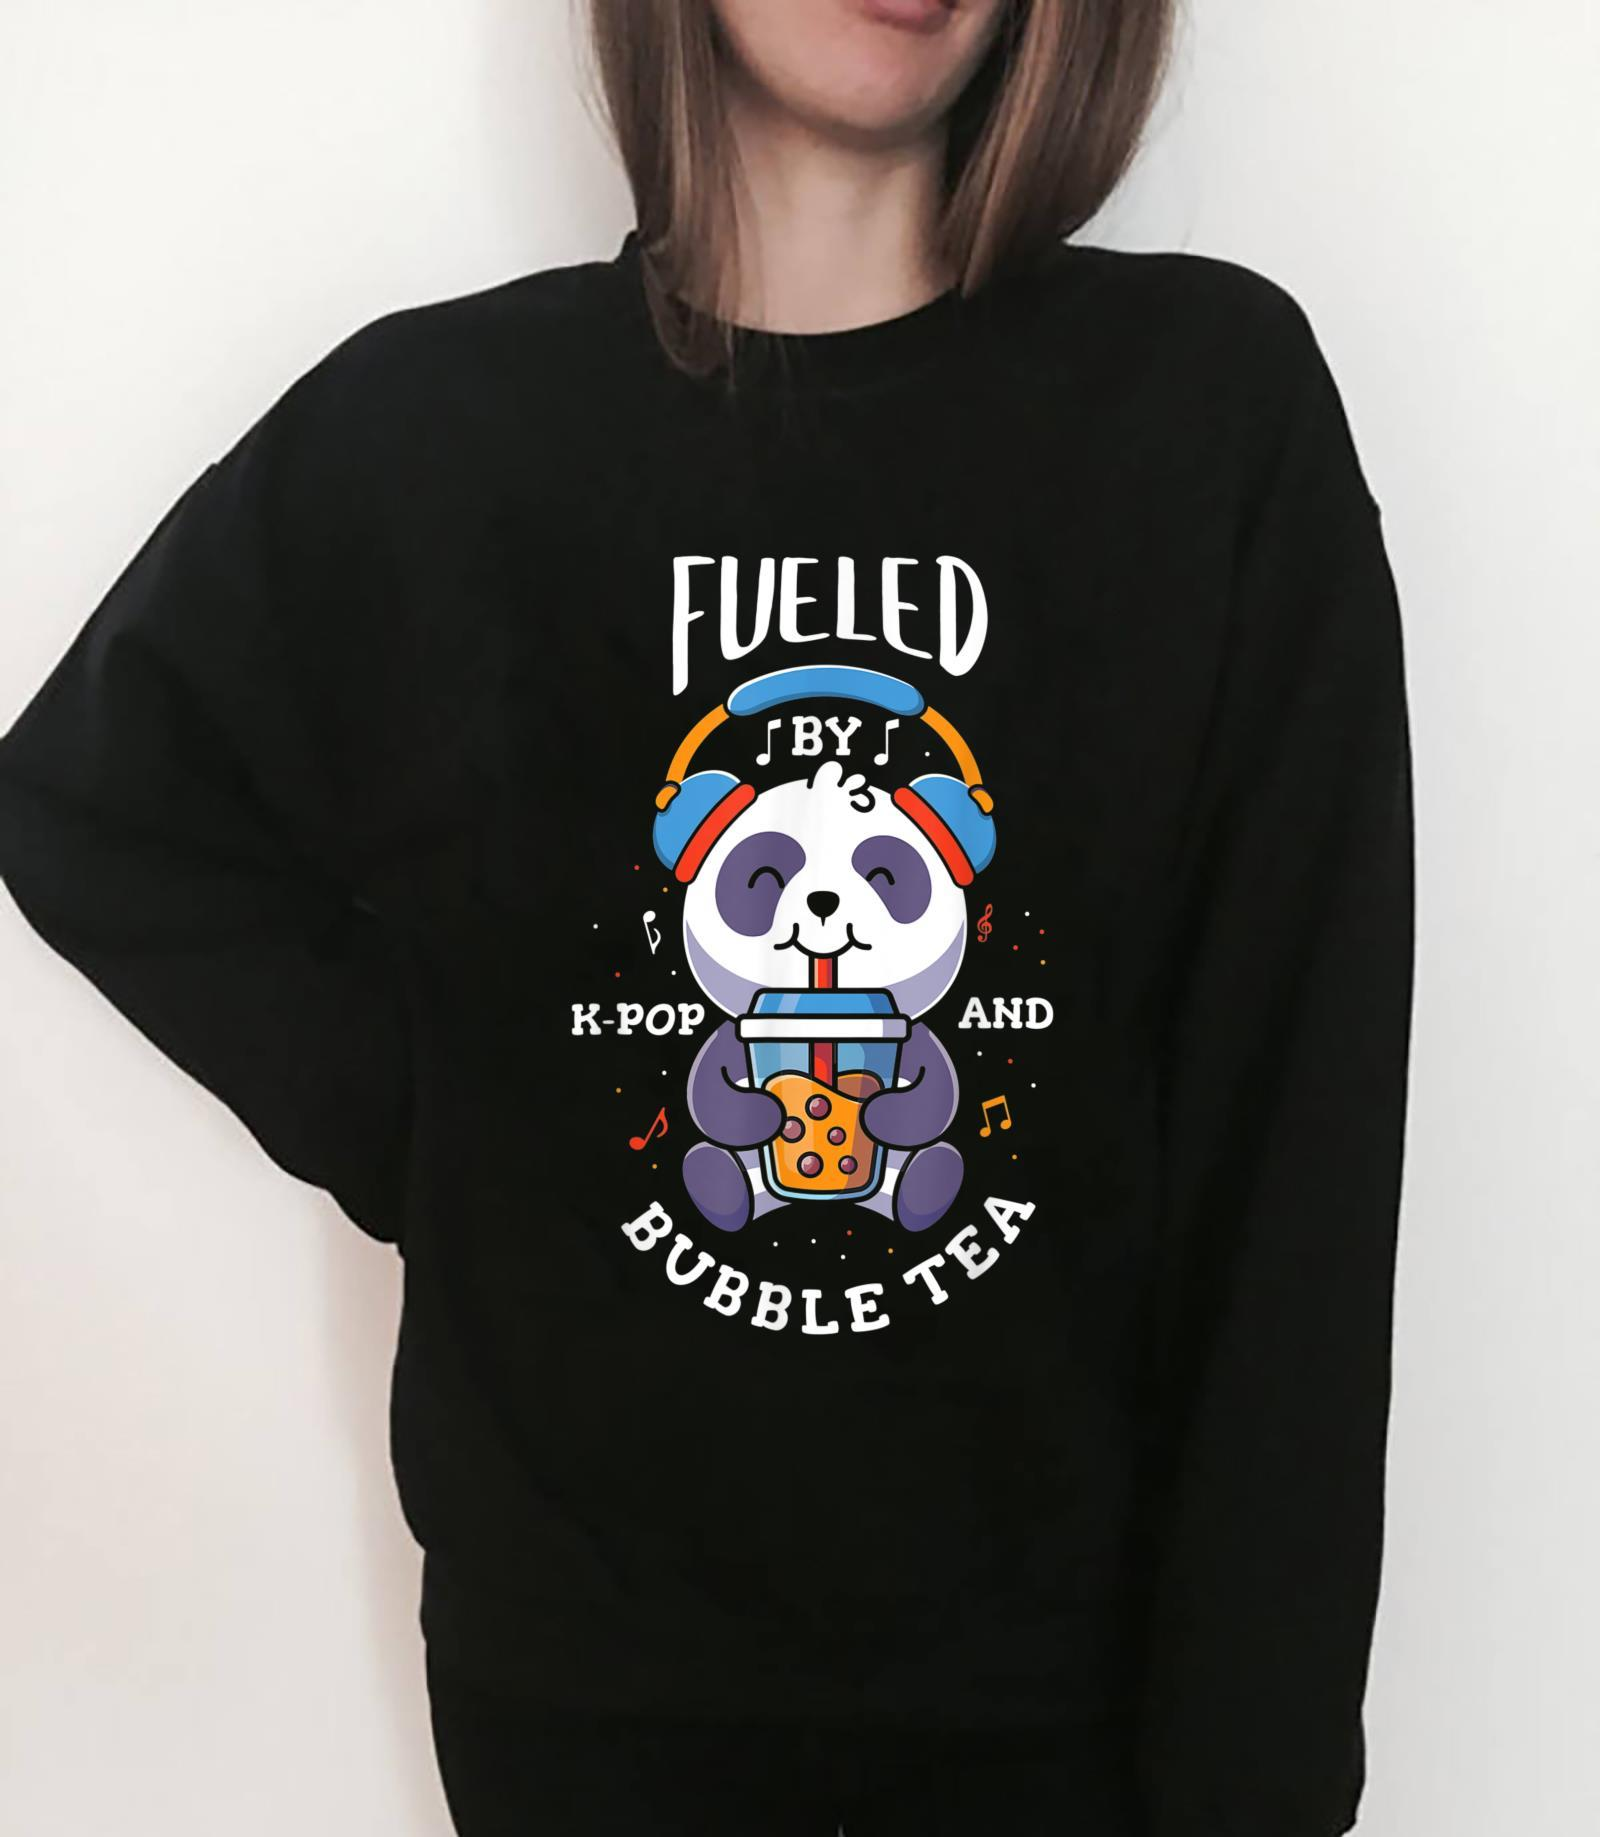 Fueled by kpop and bubble tea Design for a KPop Fan Shirt sweater